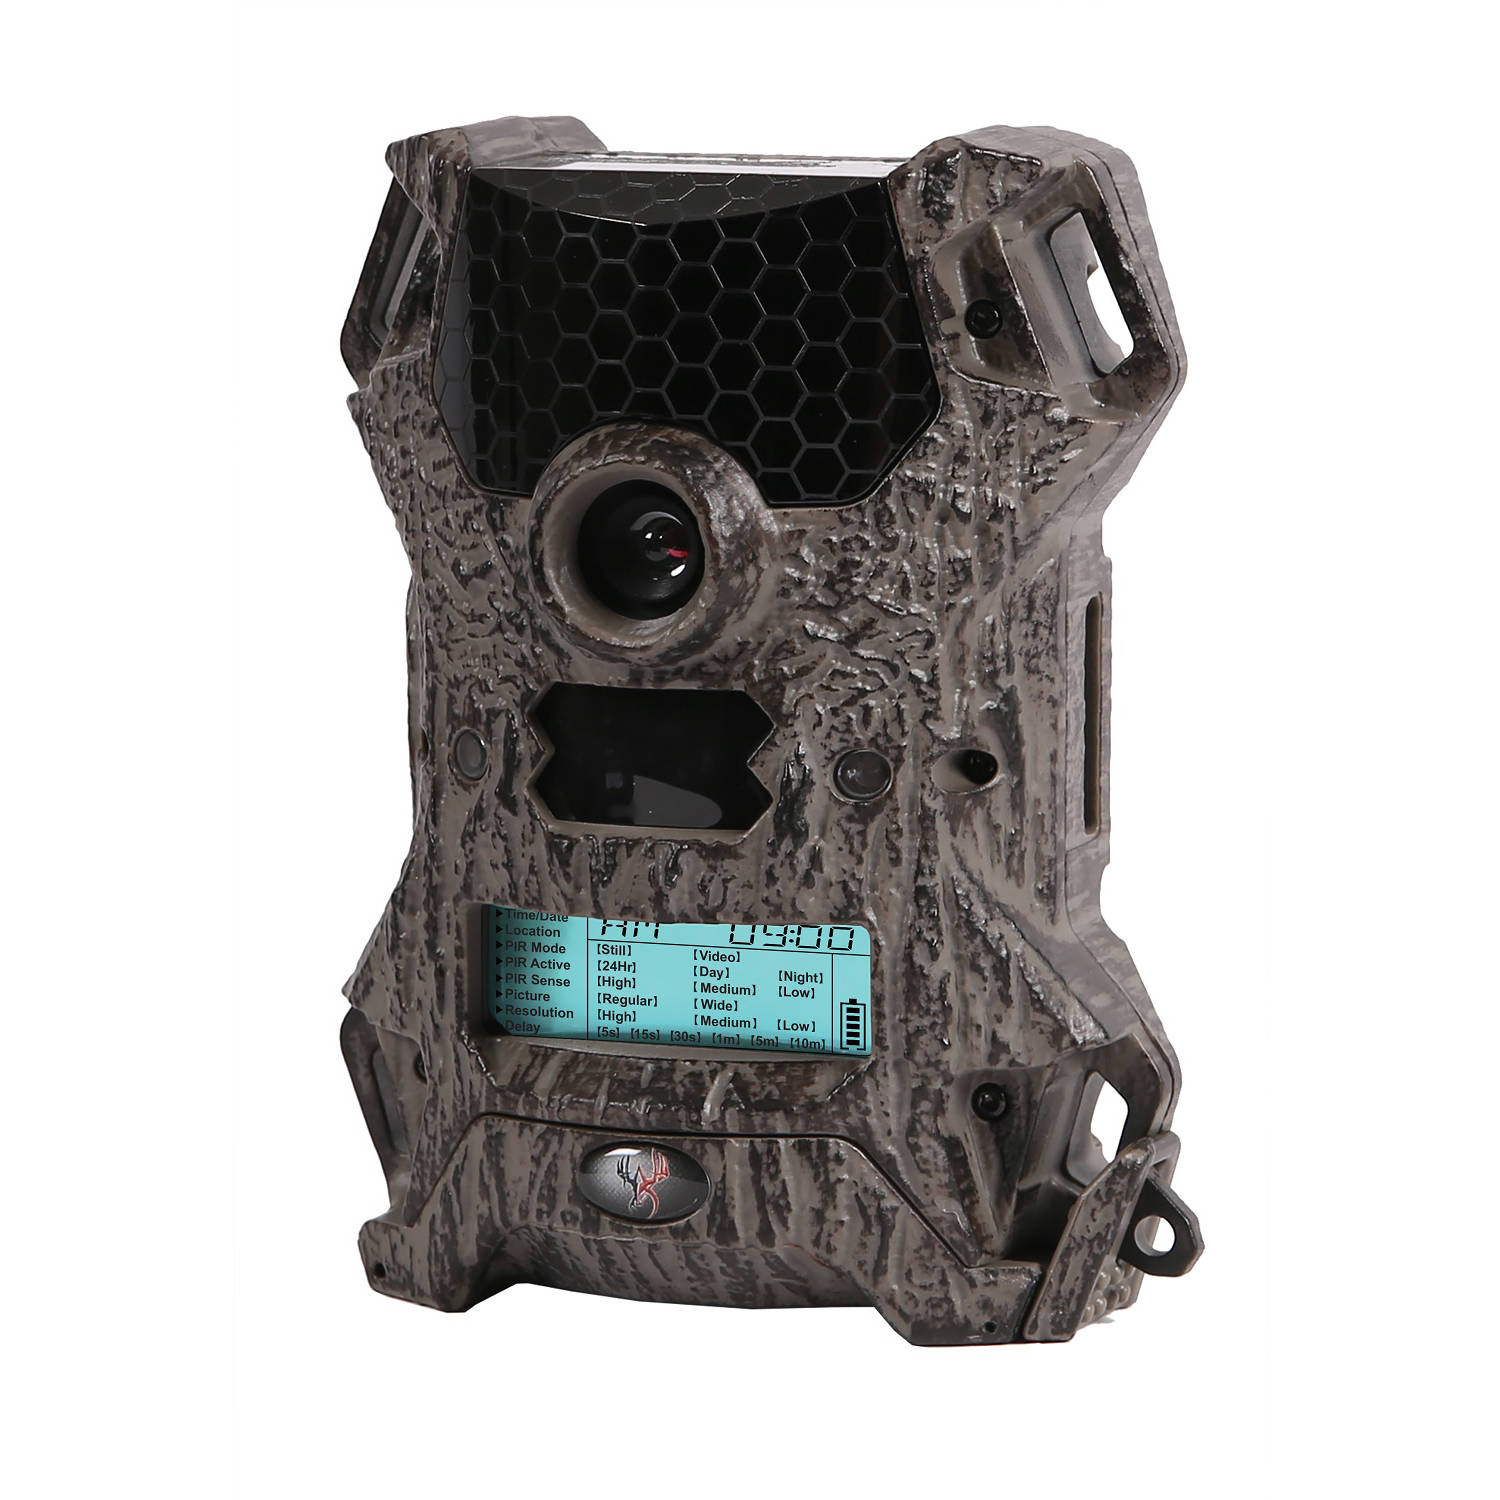 Wildgame Innovations Vision 8 Lightsout TruBark Game Camera by Wildgame Innovations